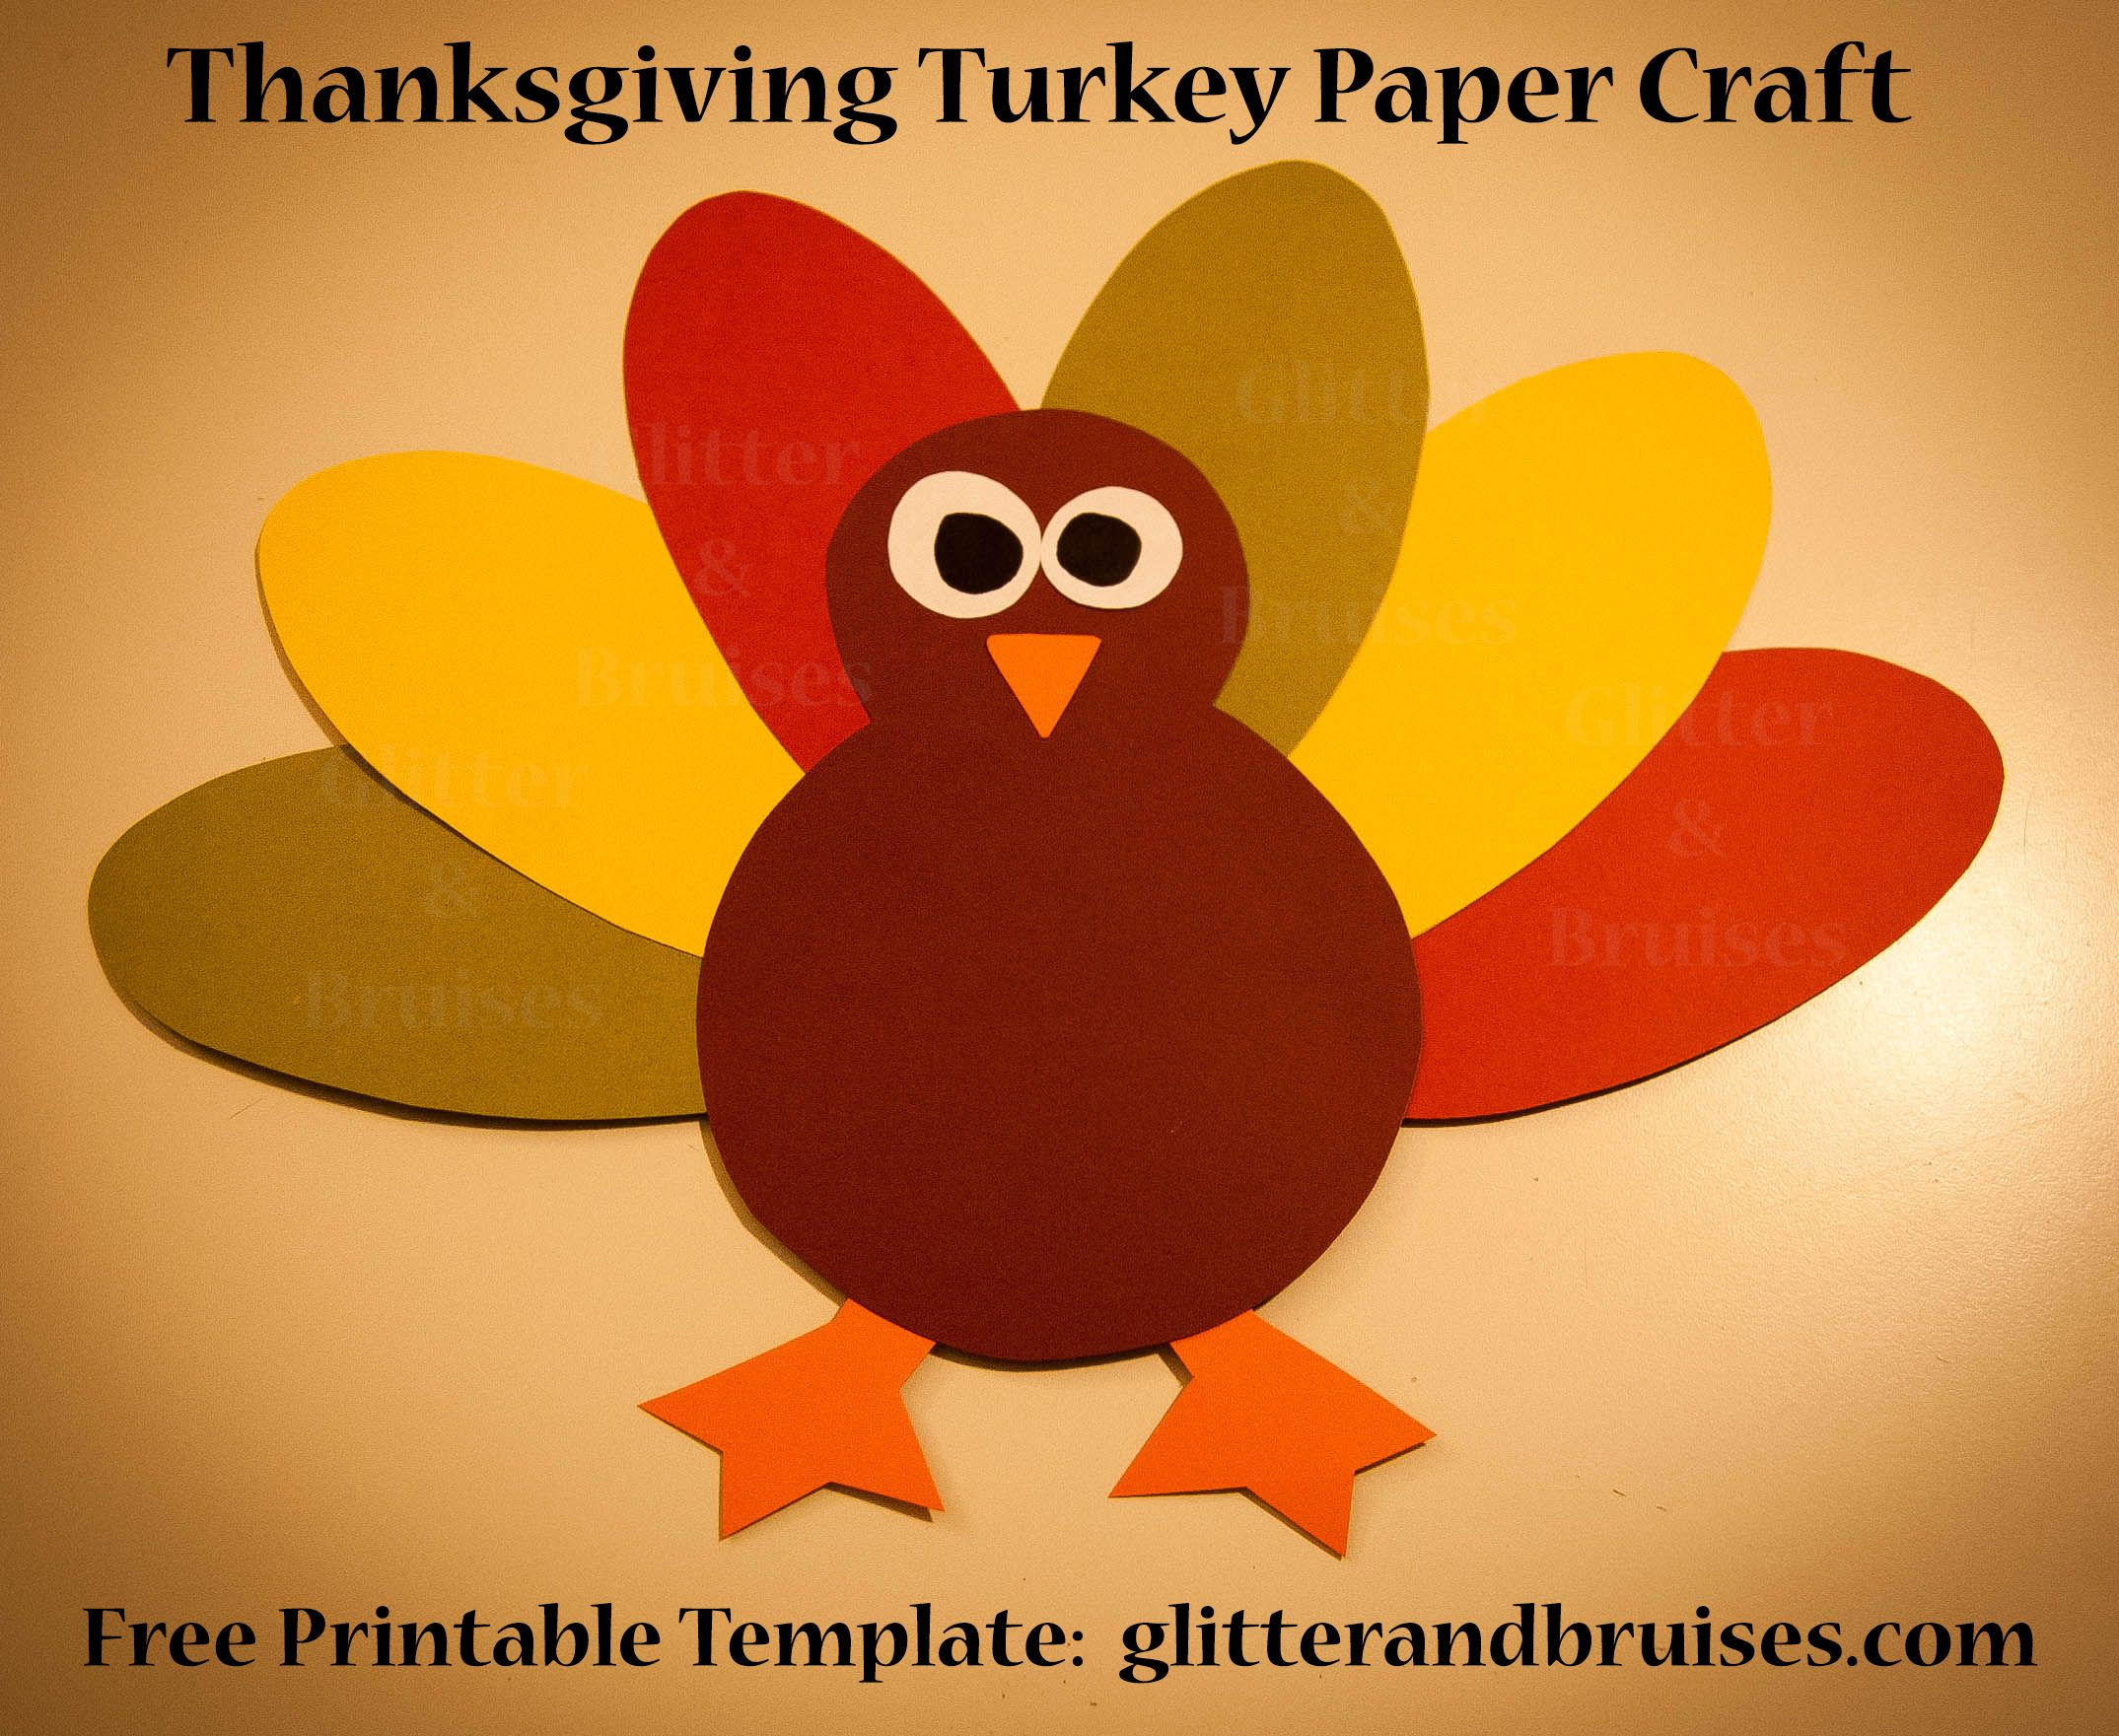 Pinglitter And Bruises On Thanksgiving | Pinterest | Paper - Free Printable Thanksgiving Turkey Template